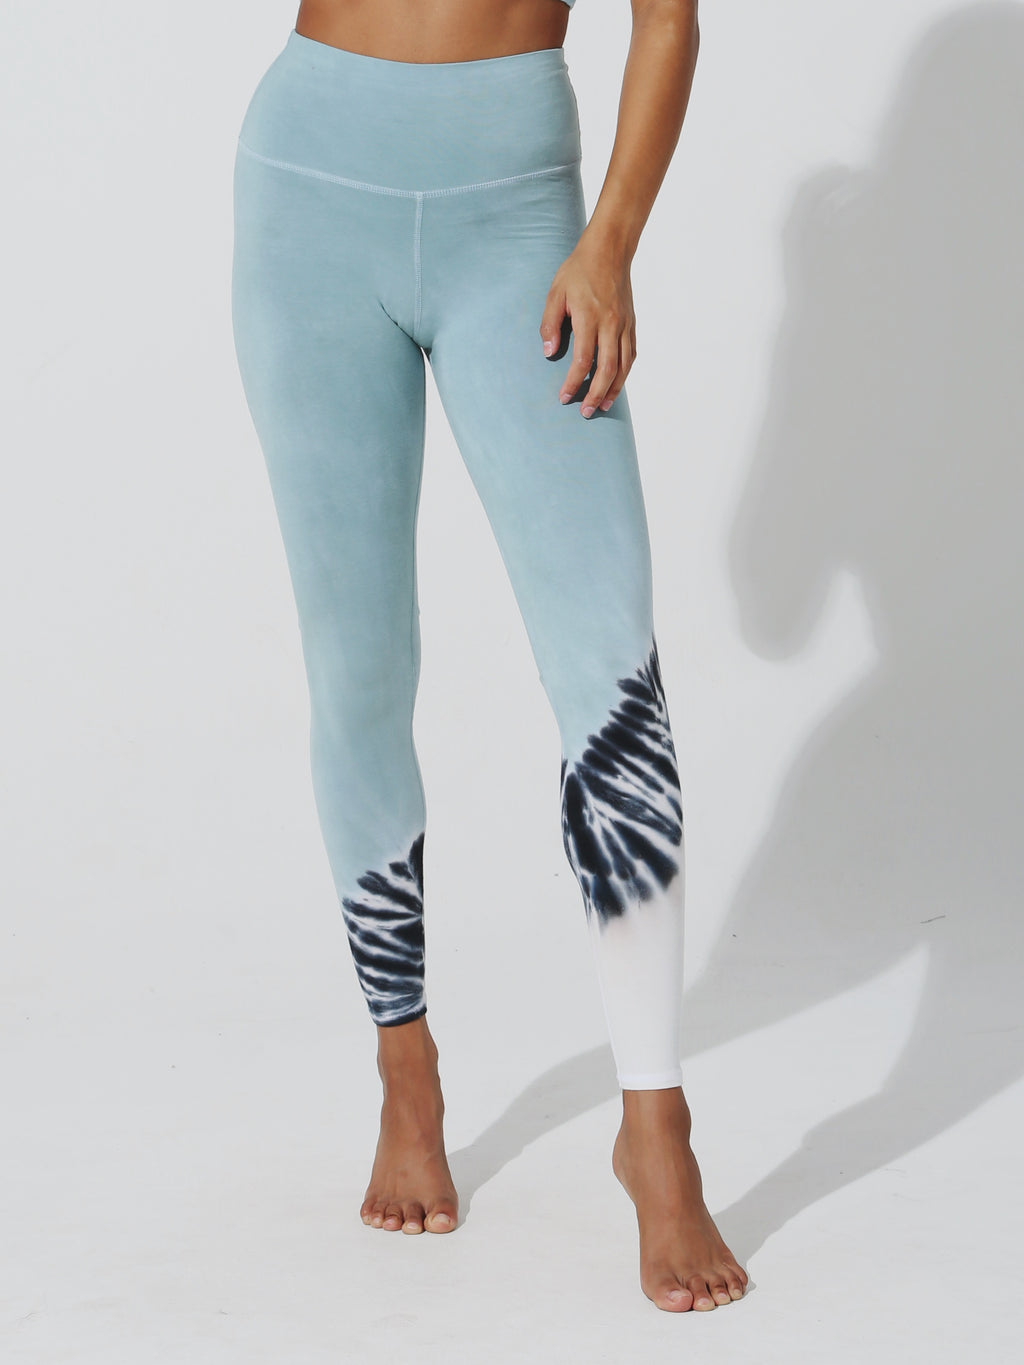 Sunset Legging - Sage / Cloud / Onyx